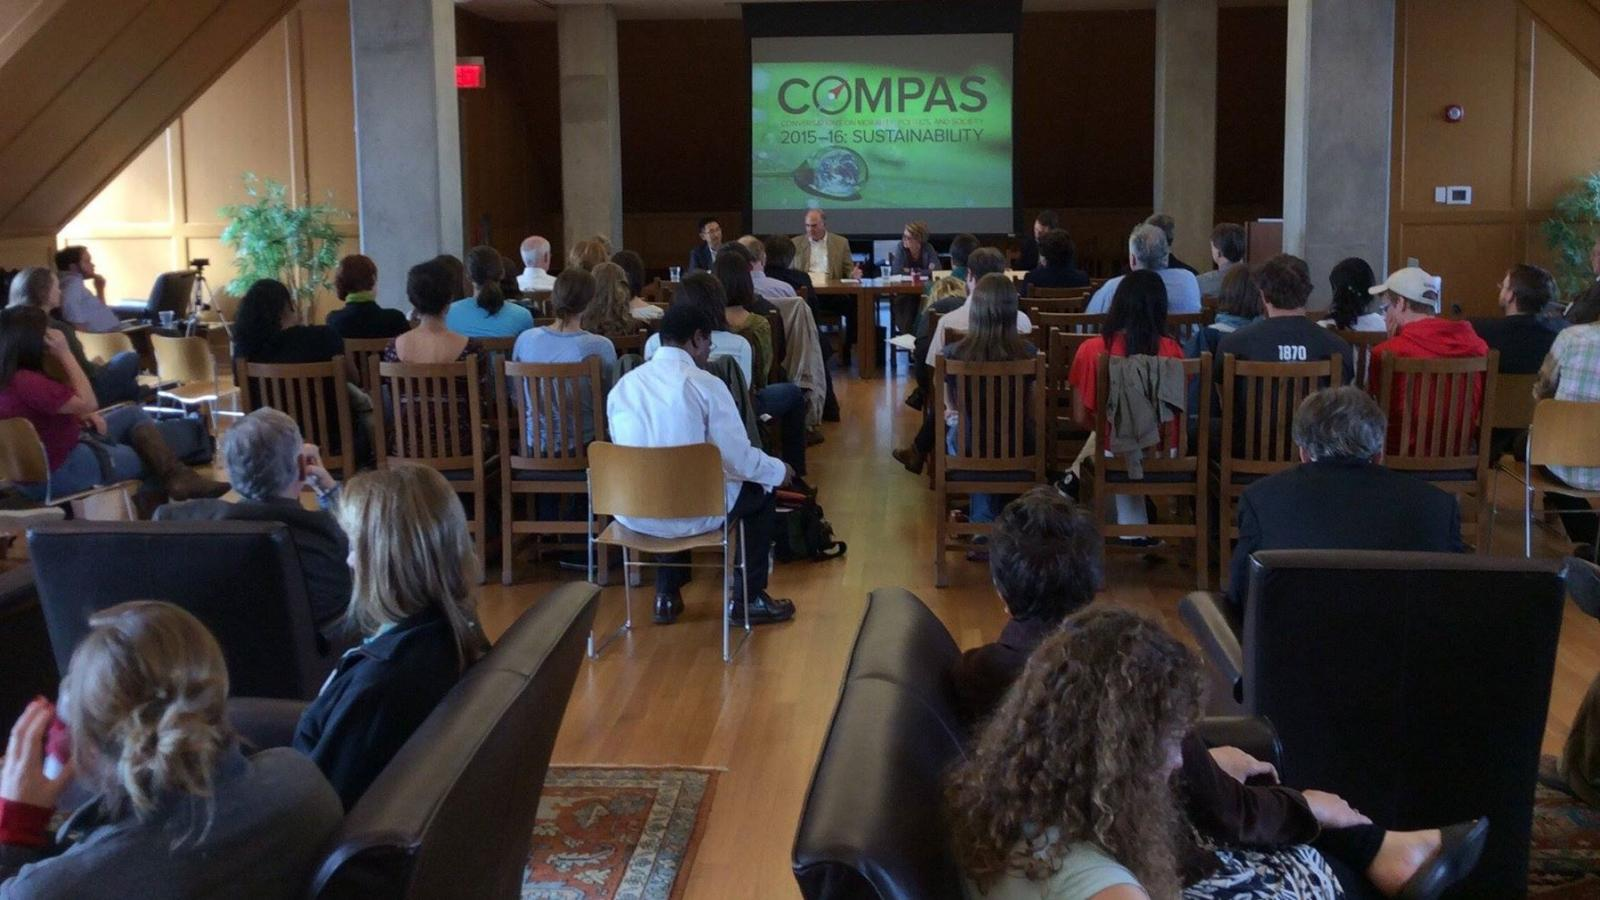 Fall Sustainability COMPAS Conference